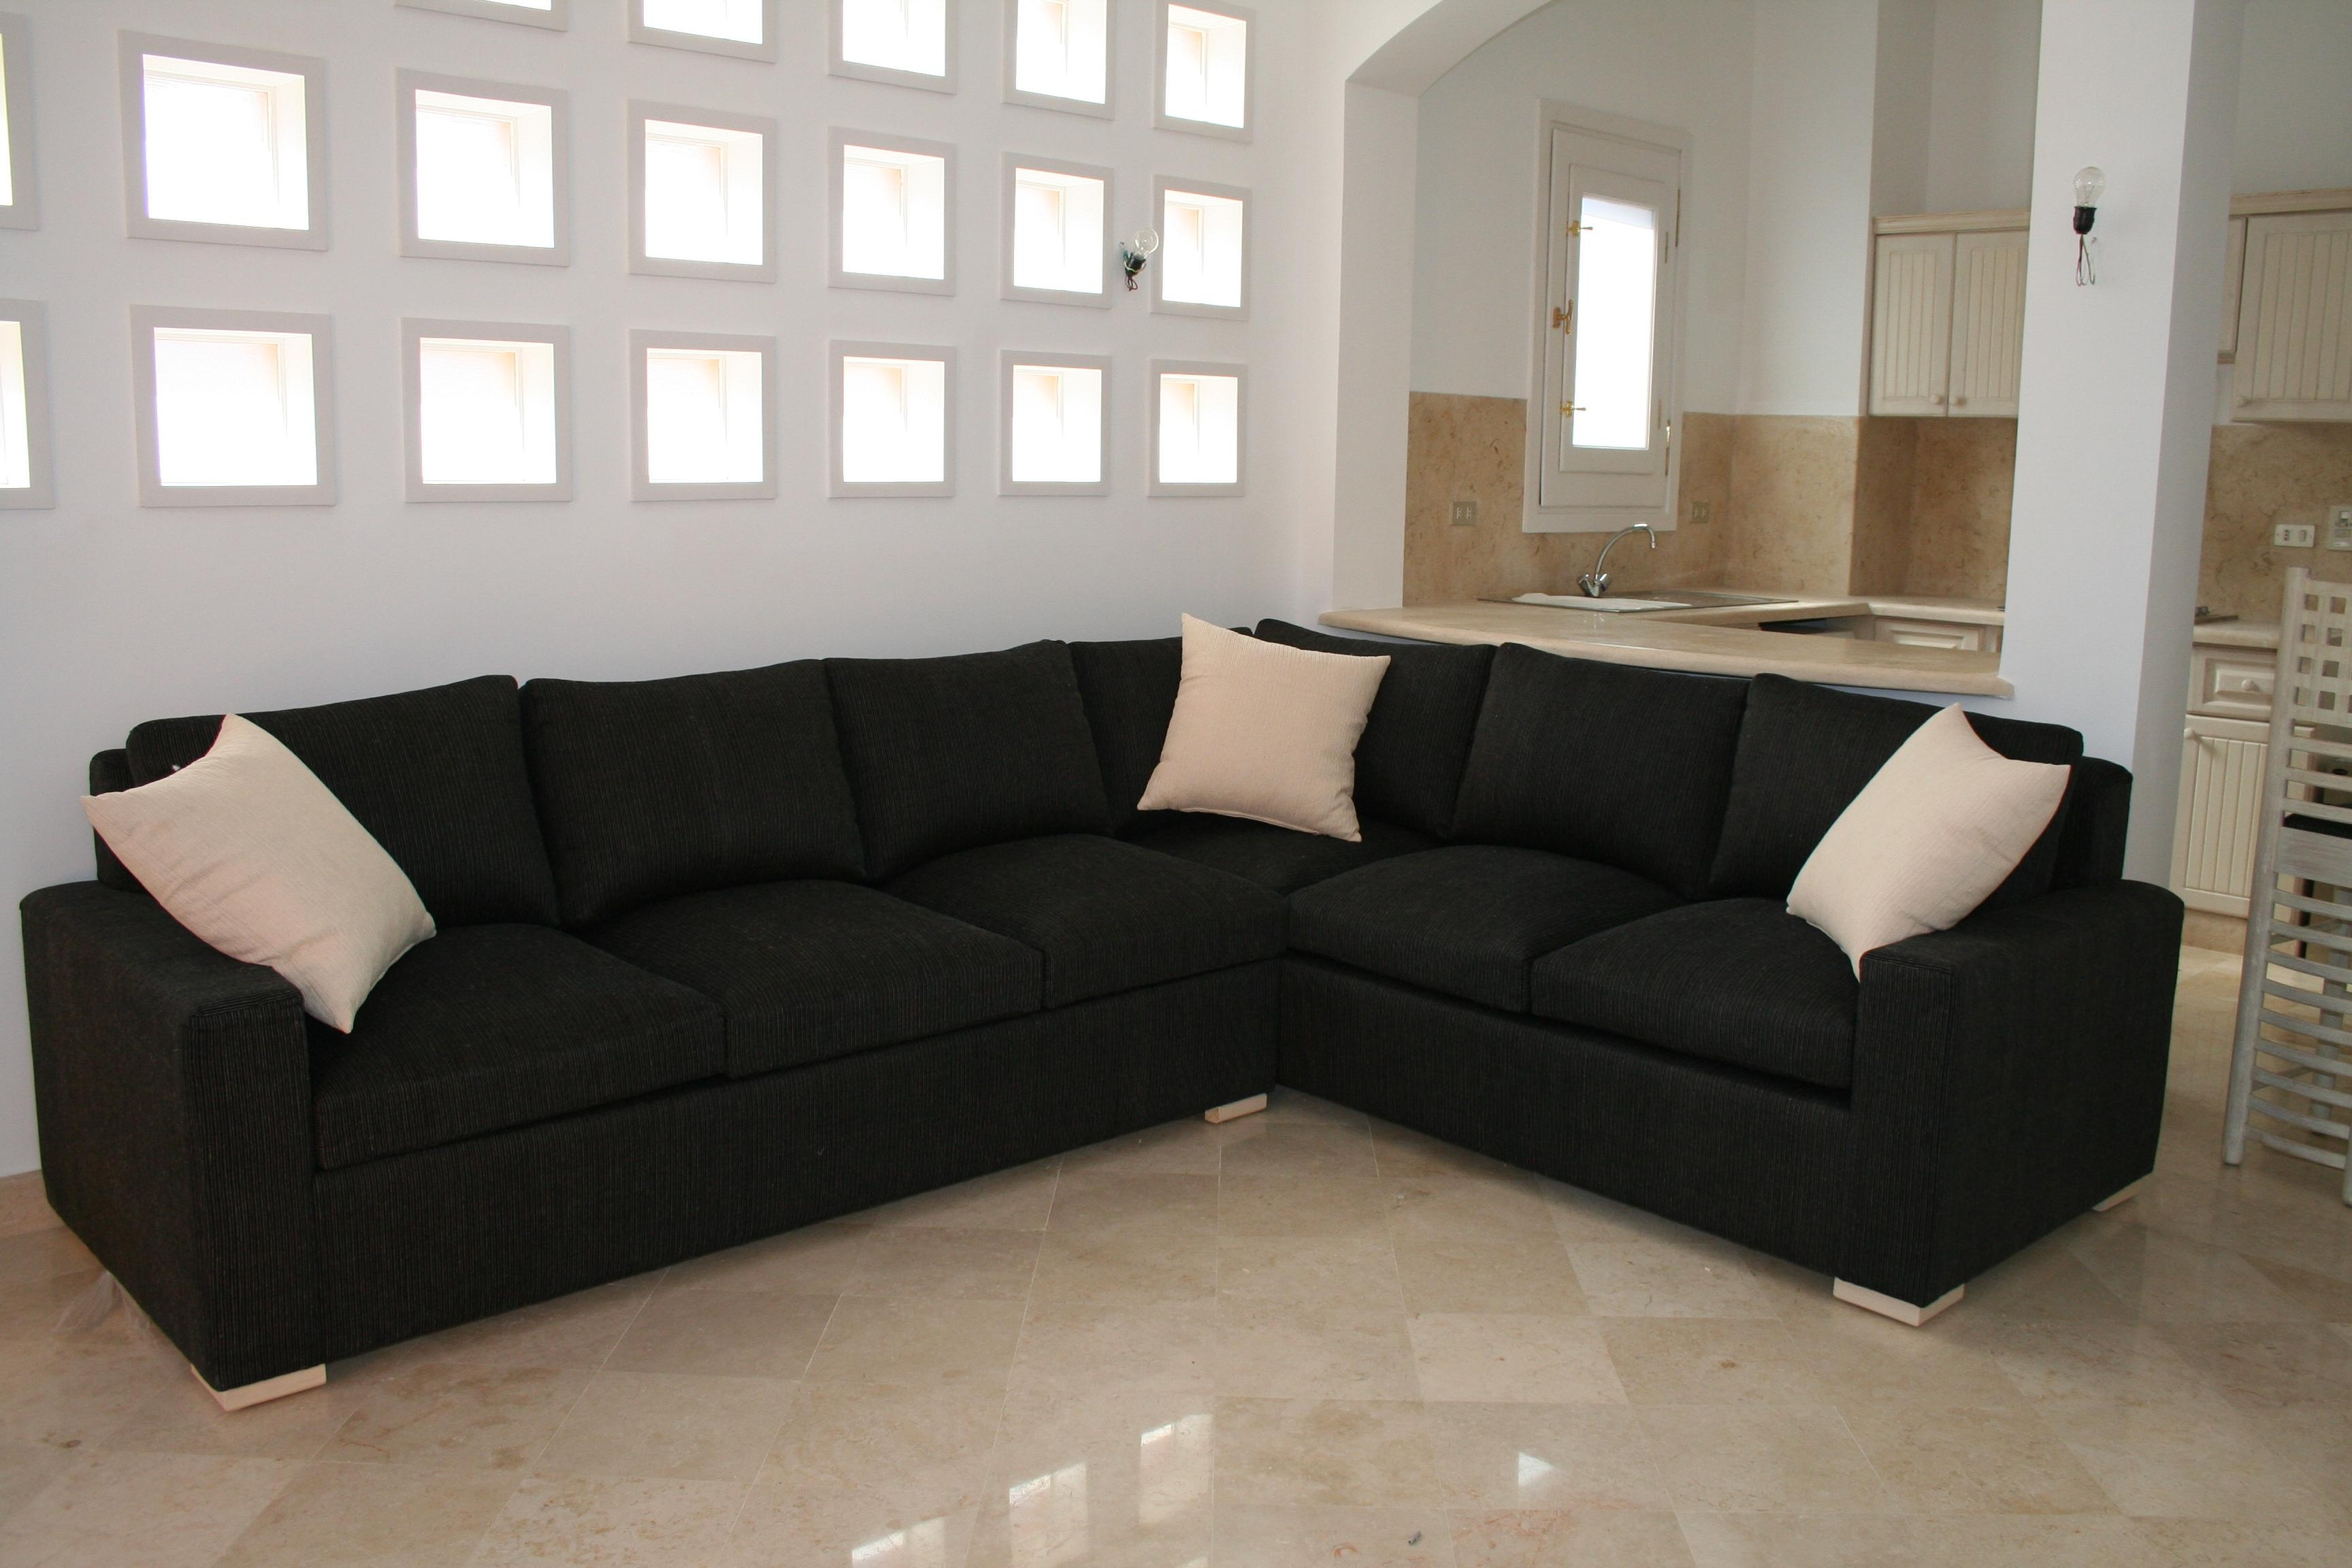 Small L Shaped Sofa | Couches N Cots For Small L Shaped Sofas (Image 16 of 20)